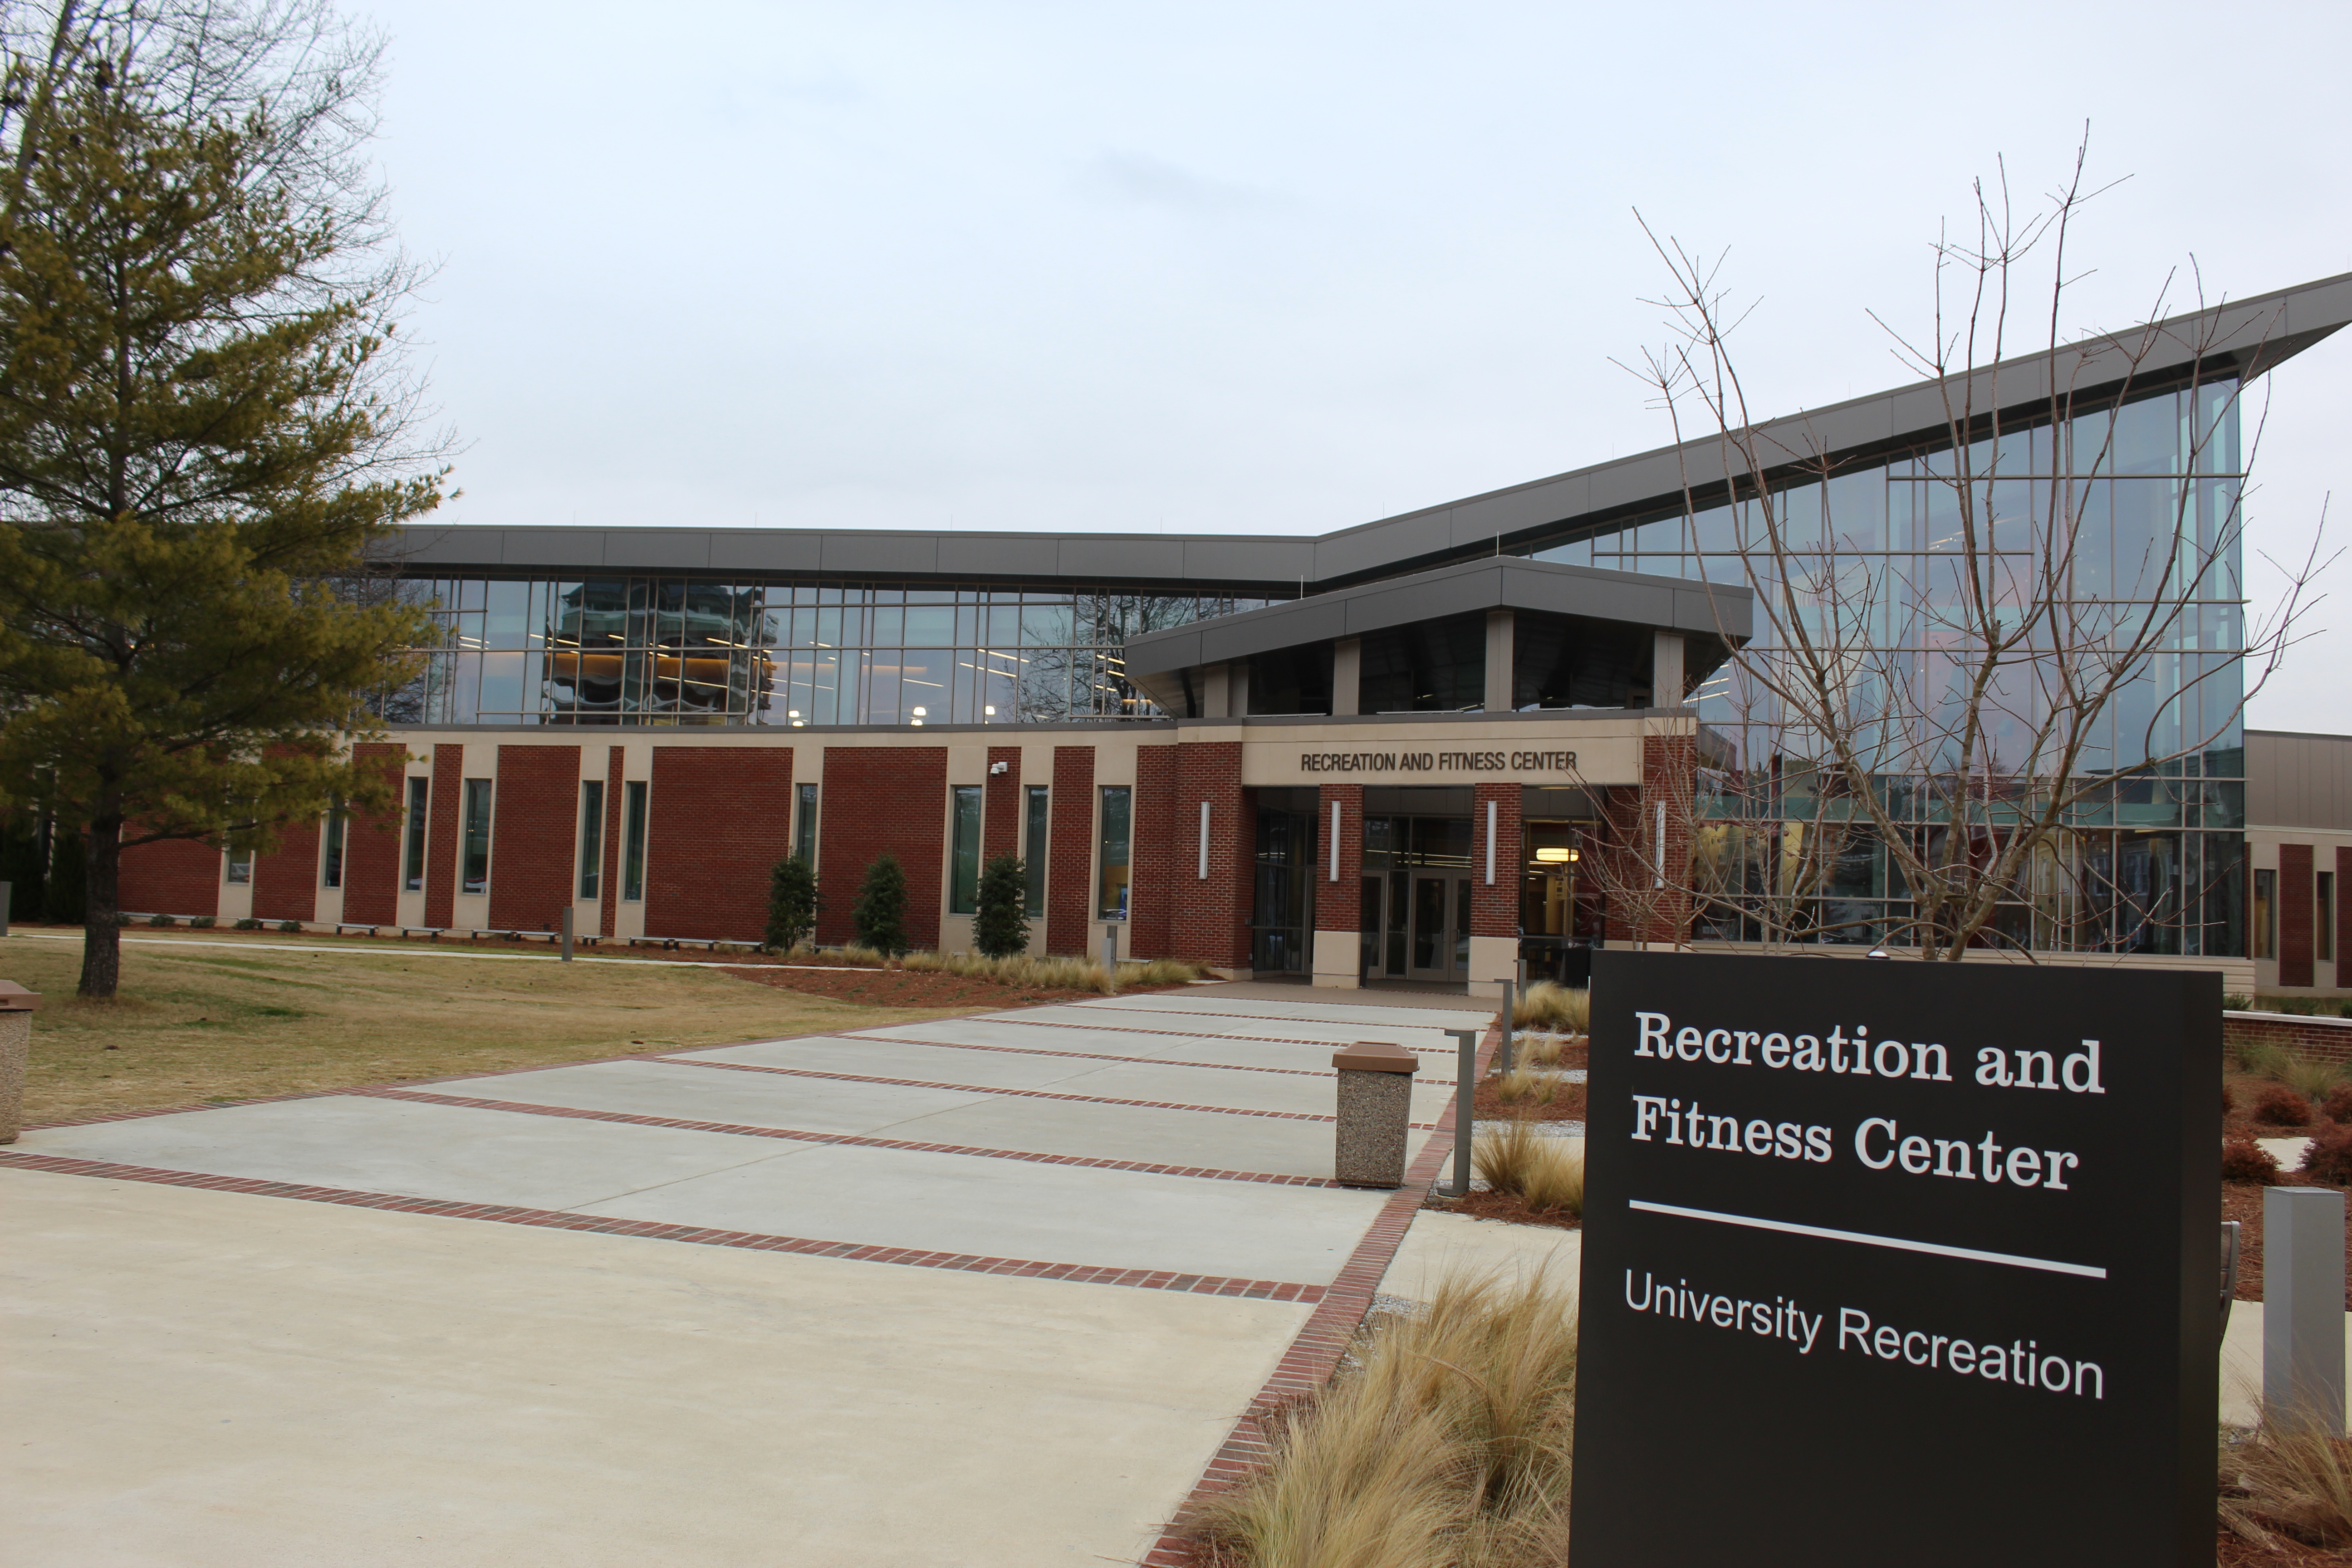 The Recreation and Fitness Center, pictured, has been closed until further notice. (Scott Young/The Chanticleer)